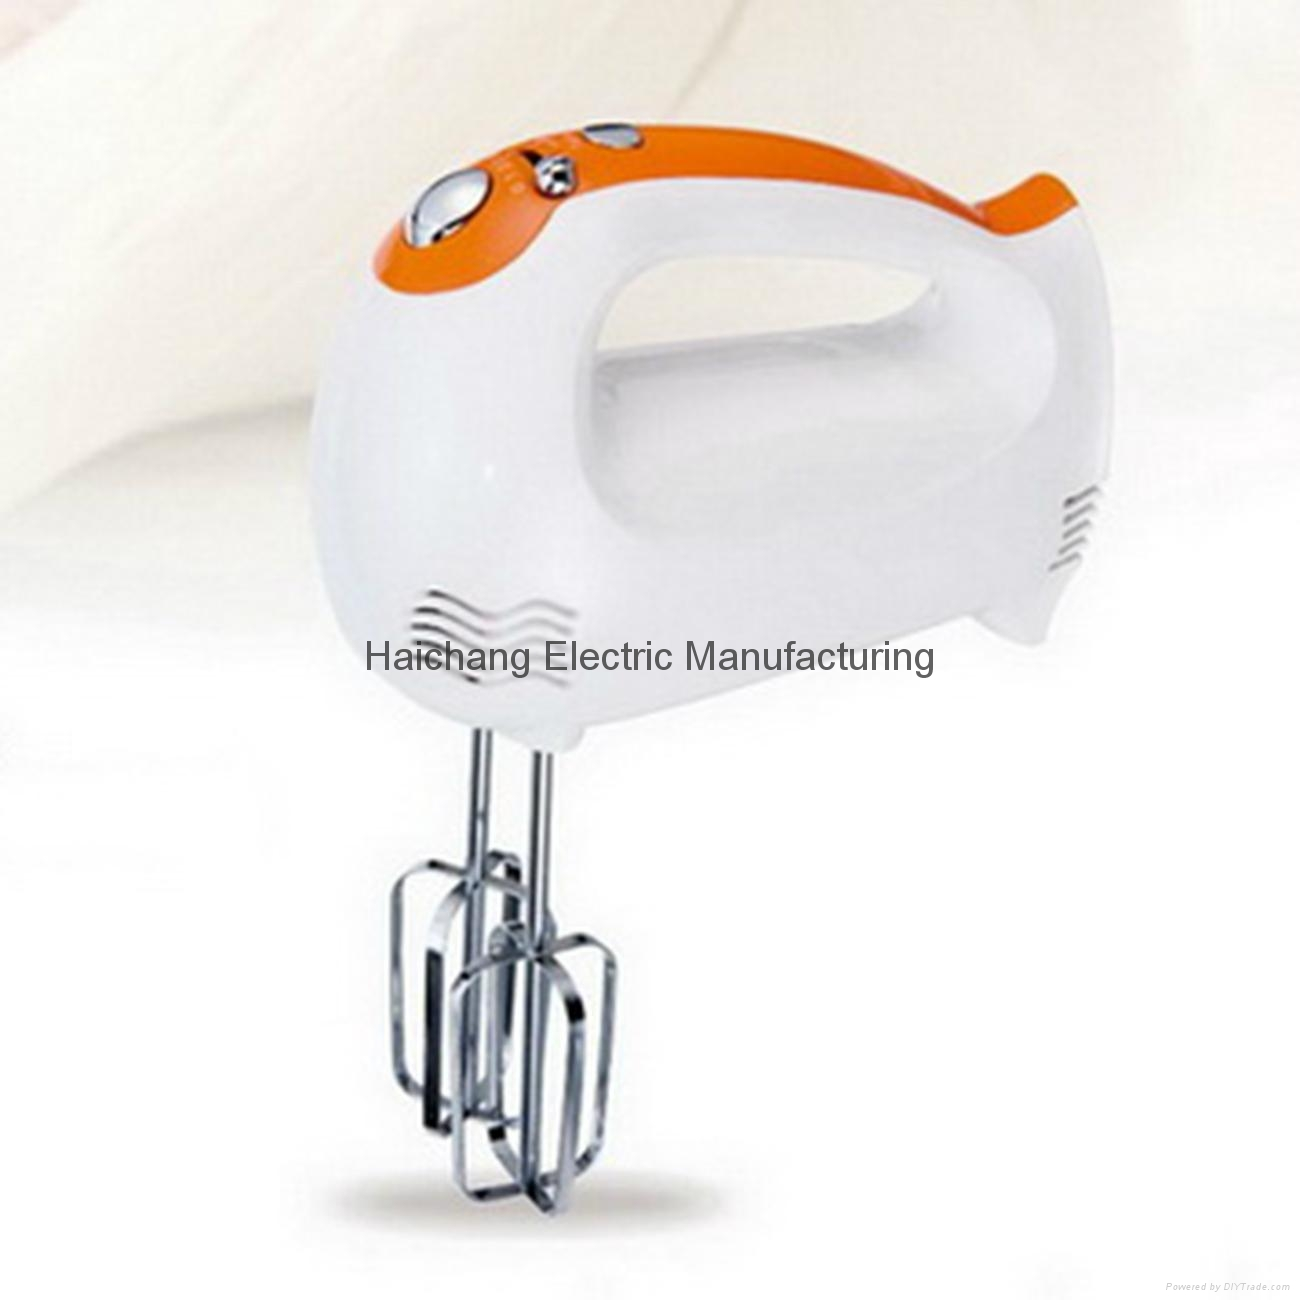 5 Speeds Stainless Steel Stirrers Multifunction Electric Hand Mixer with CB cert 1